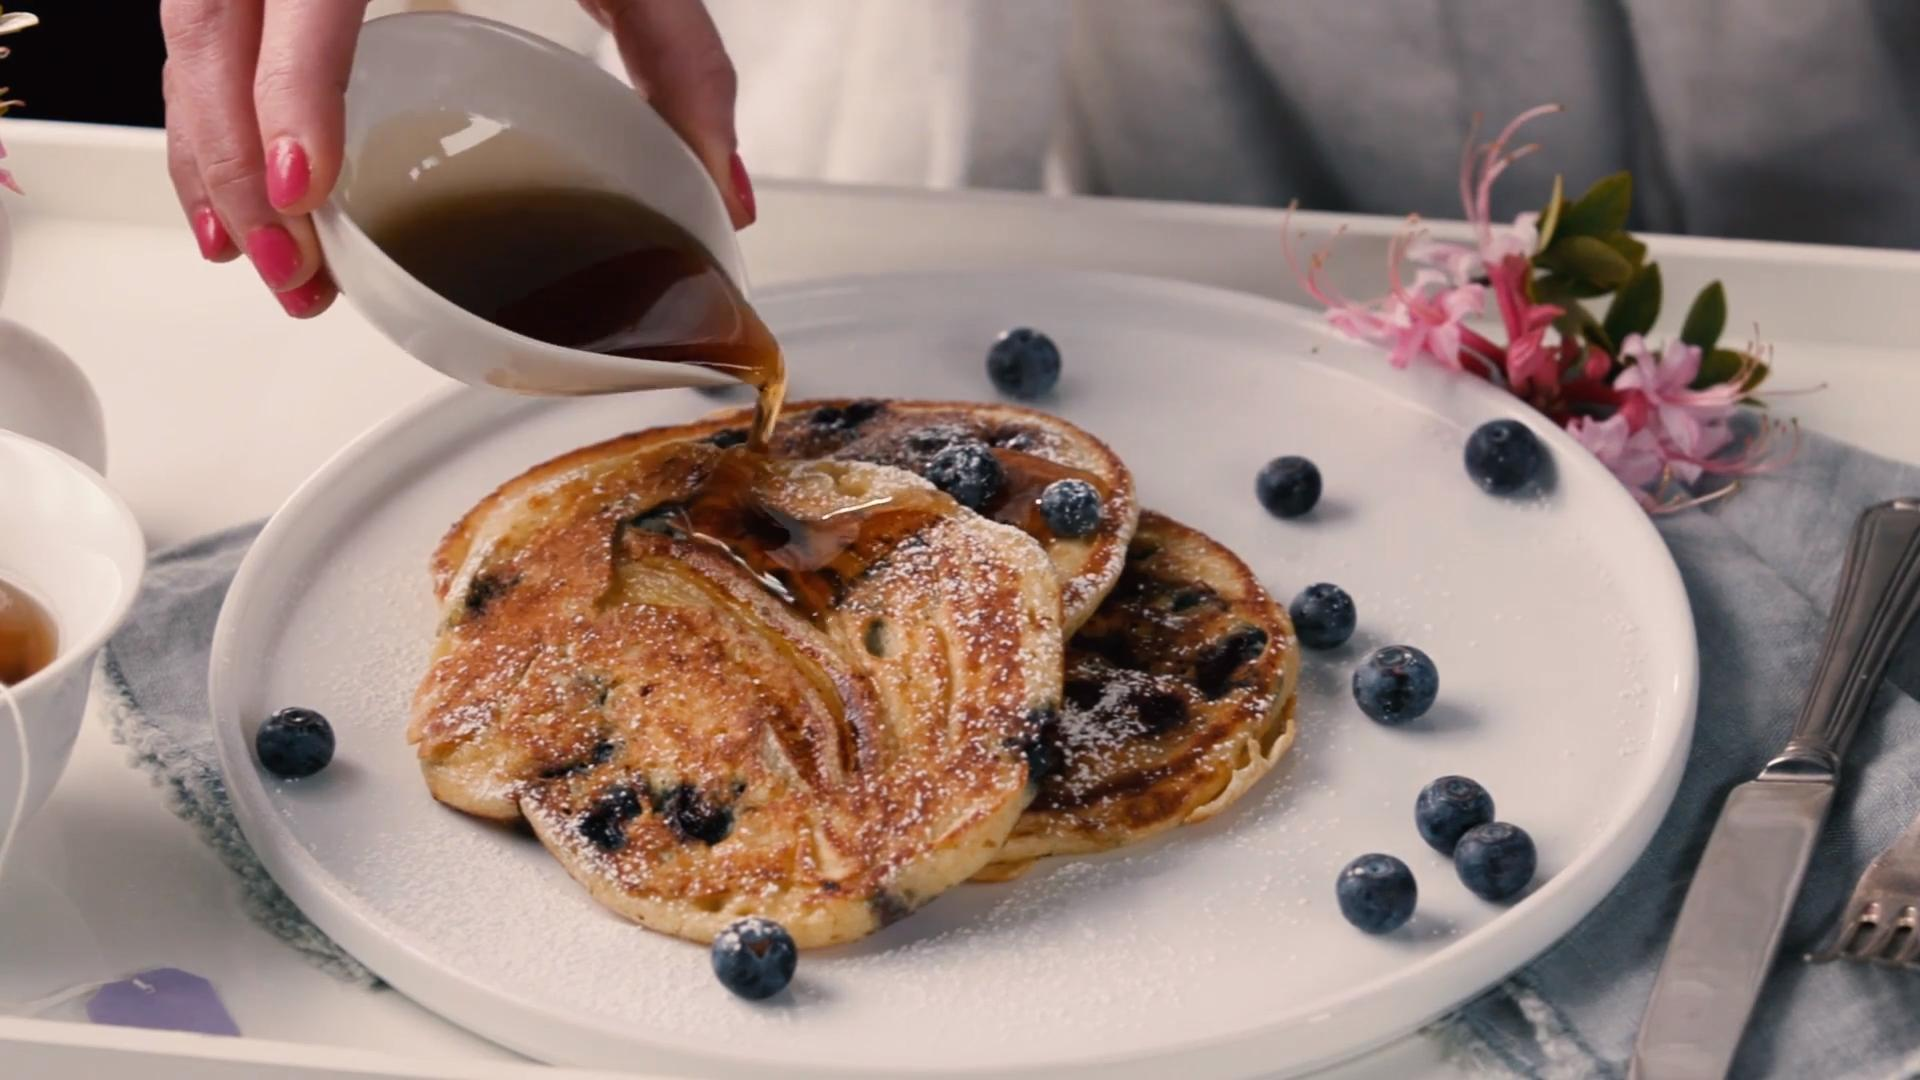 Blueberry-Banana Pancakes